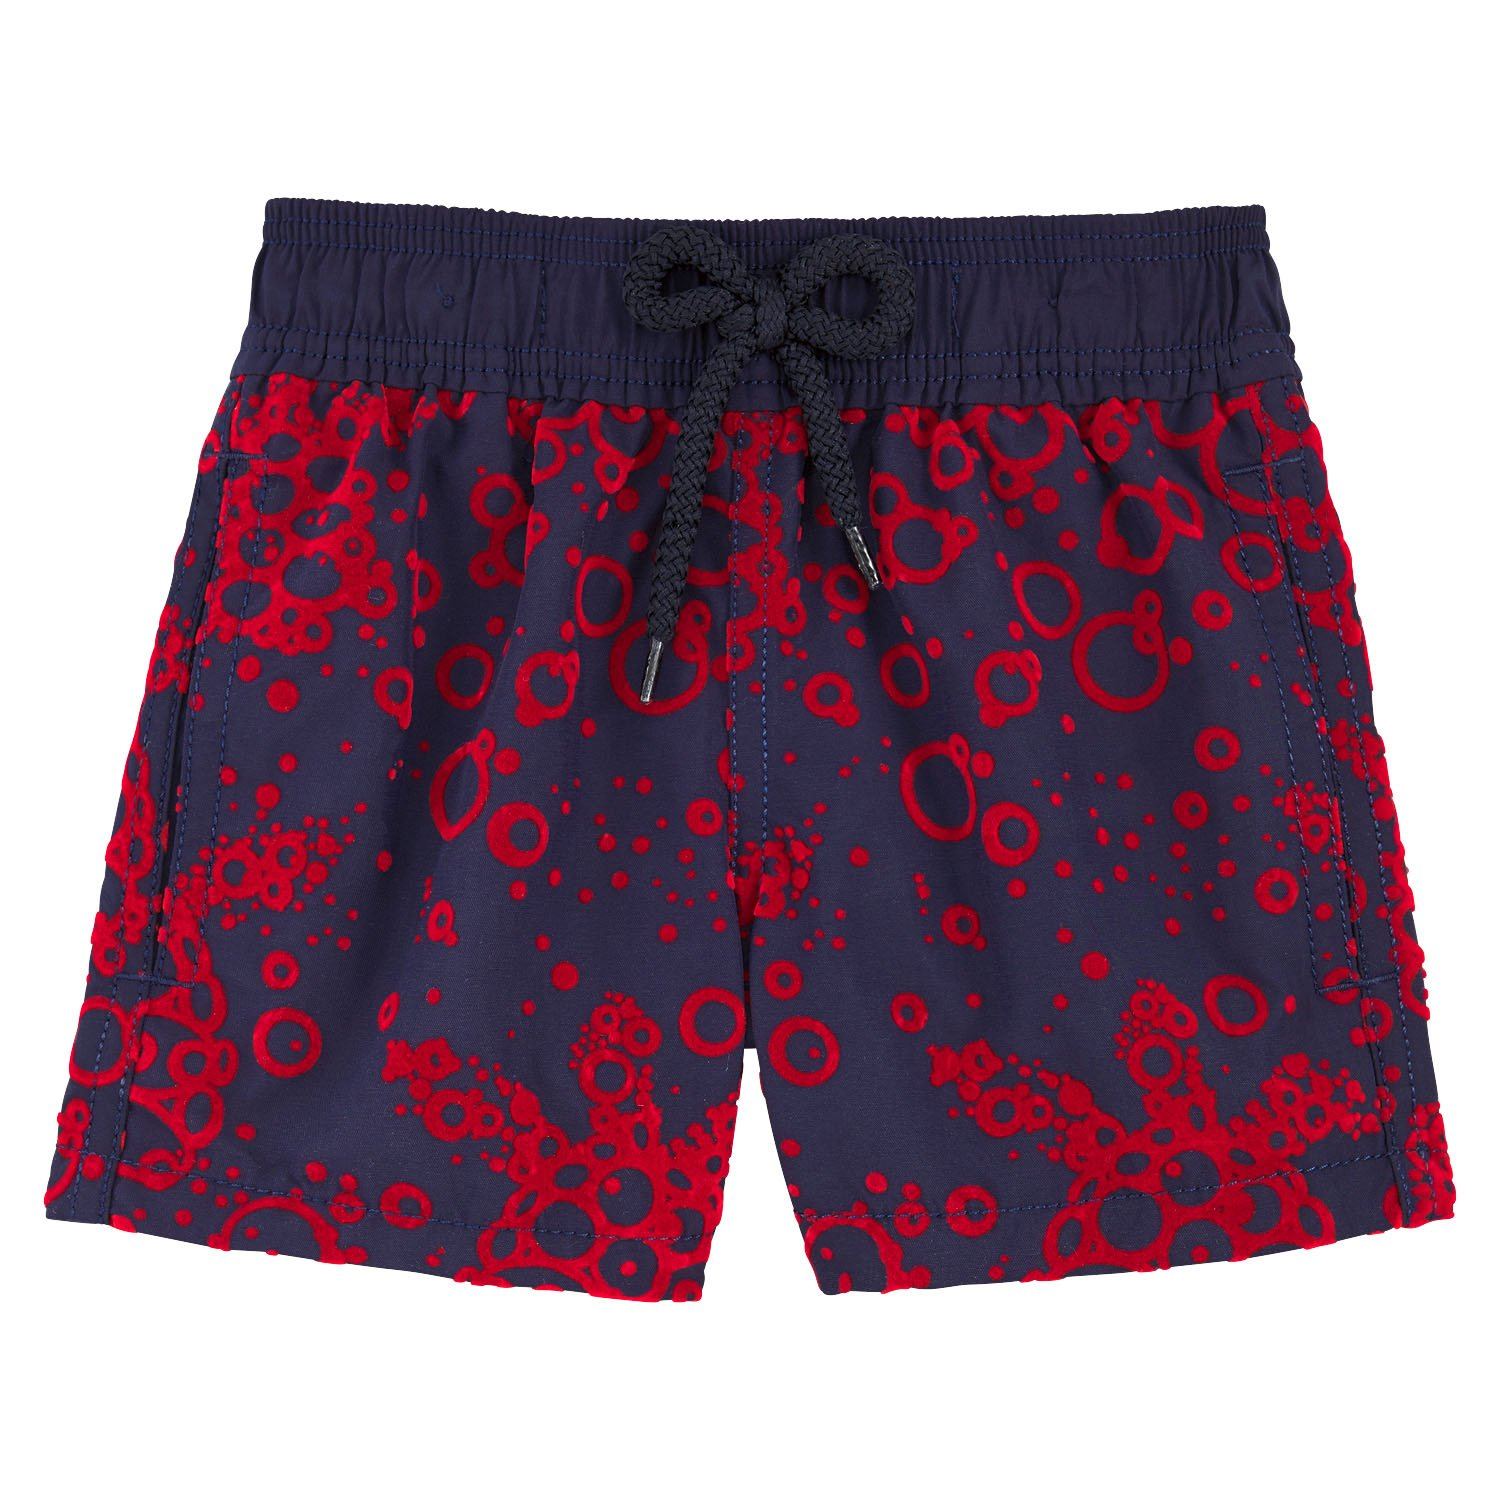 Vilebrequin - Flocked Bubbles Turtles Boy Swimwear - Boys - 4 years - Navy Blue